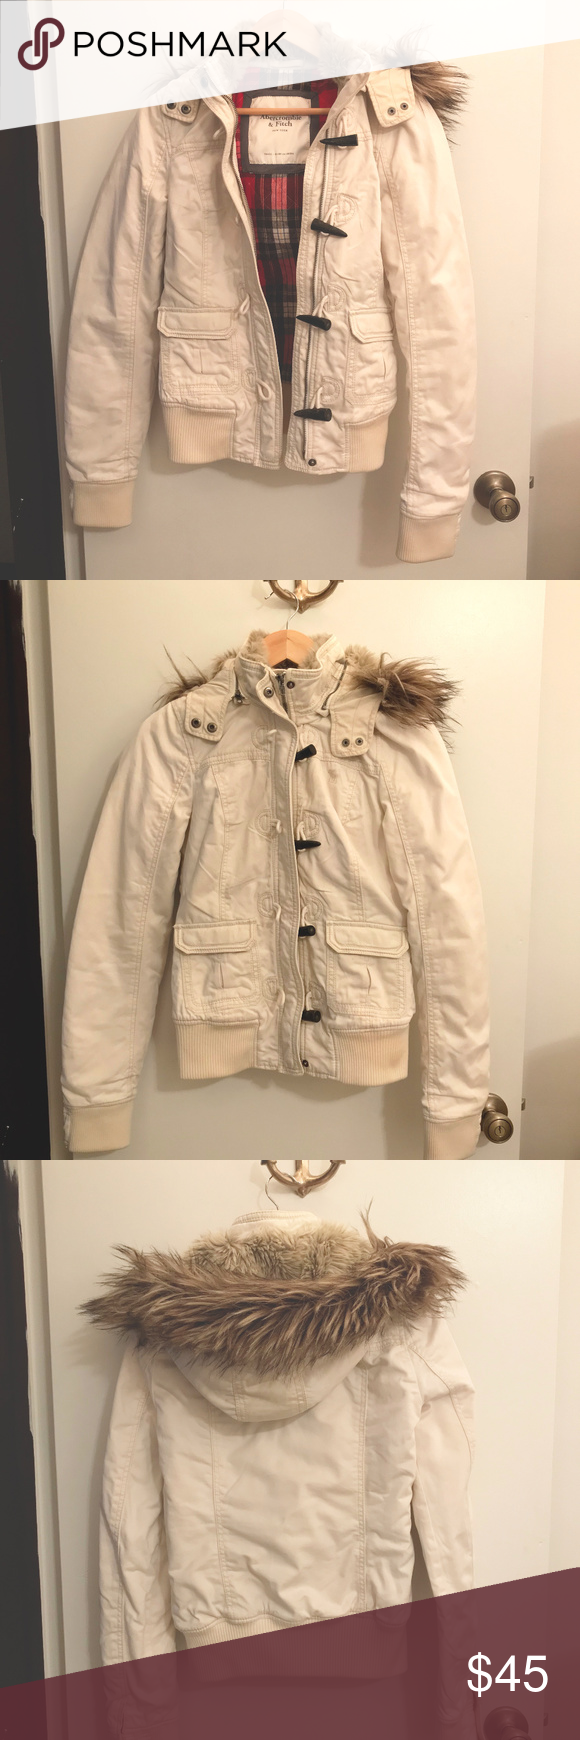 Flannel jacket with fur inside  Abercrombie u Fitch Fur Winter Coat  Cream coat Red flannel and